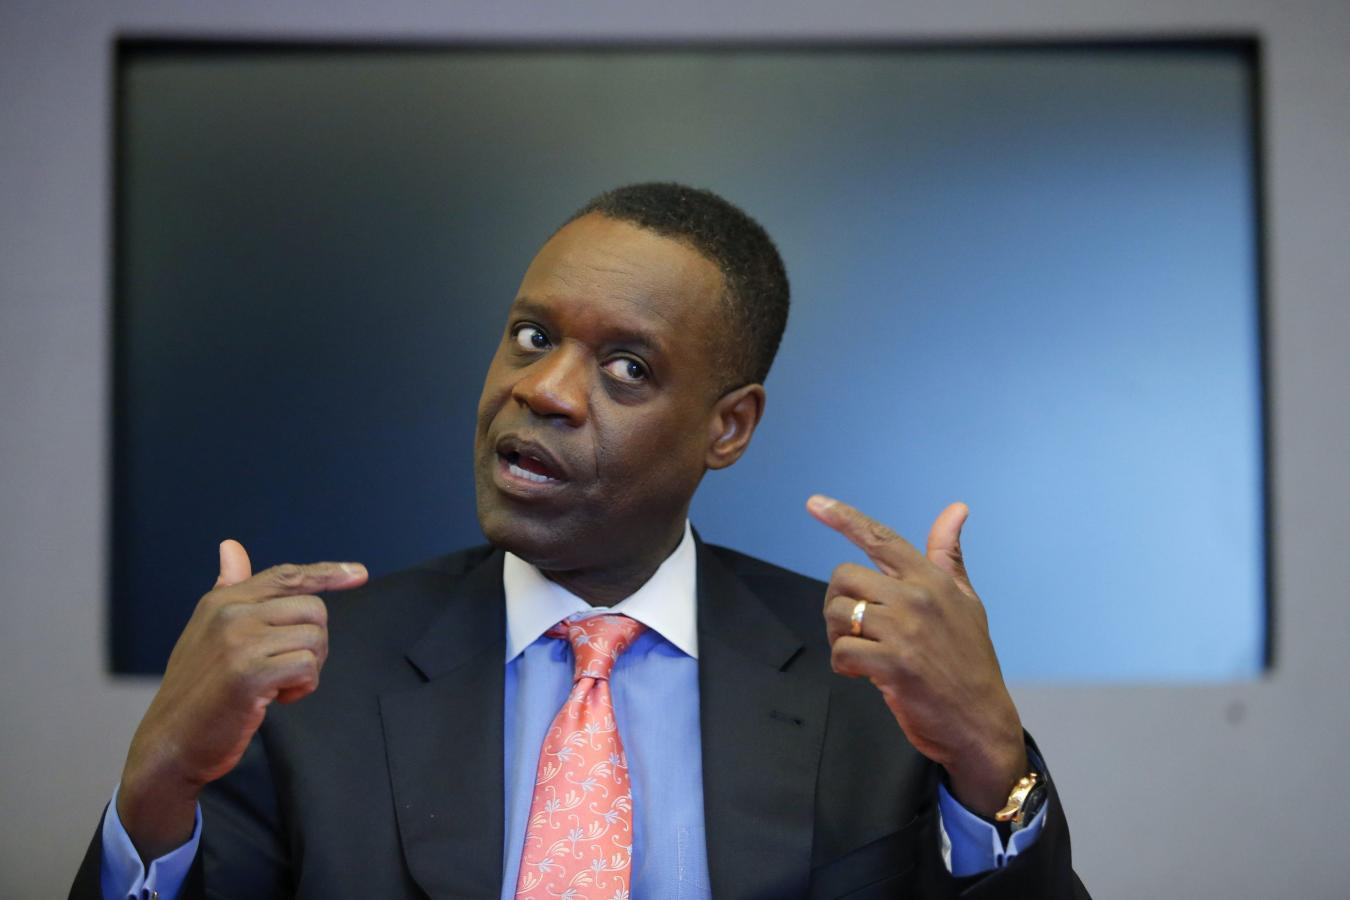 Politics in his future? Detroit case has 'done me in', Orr says